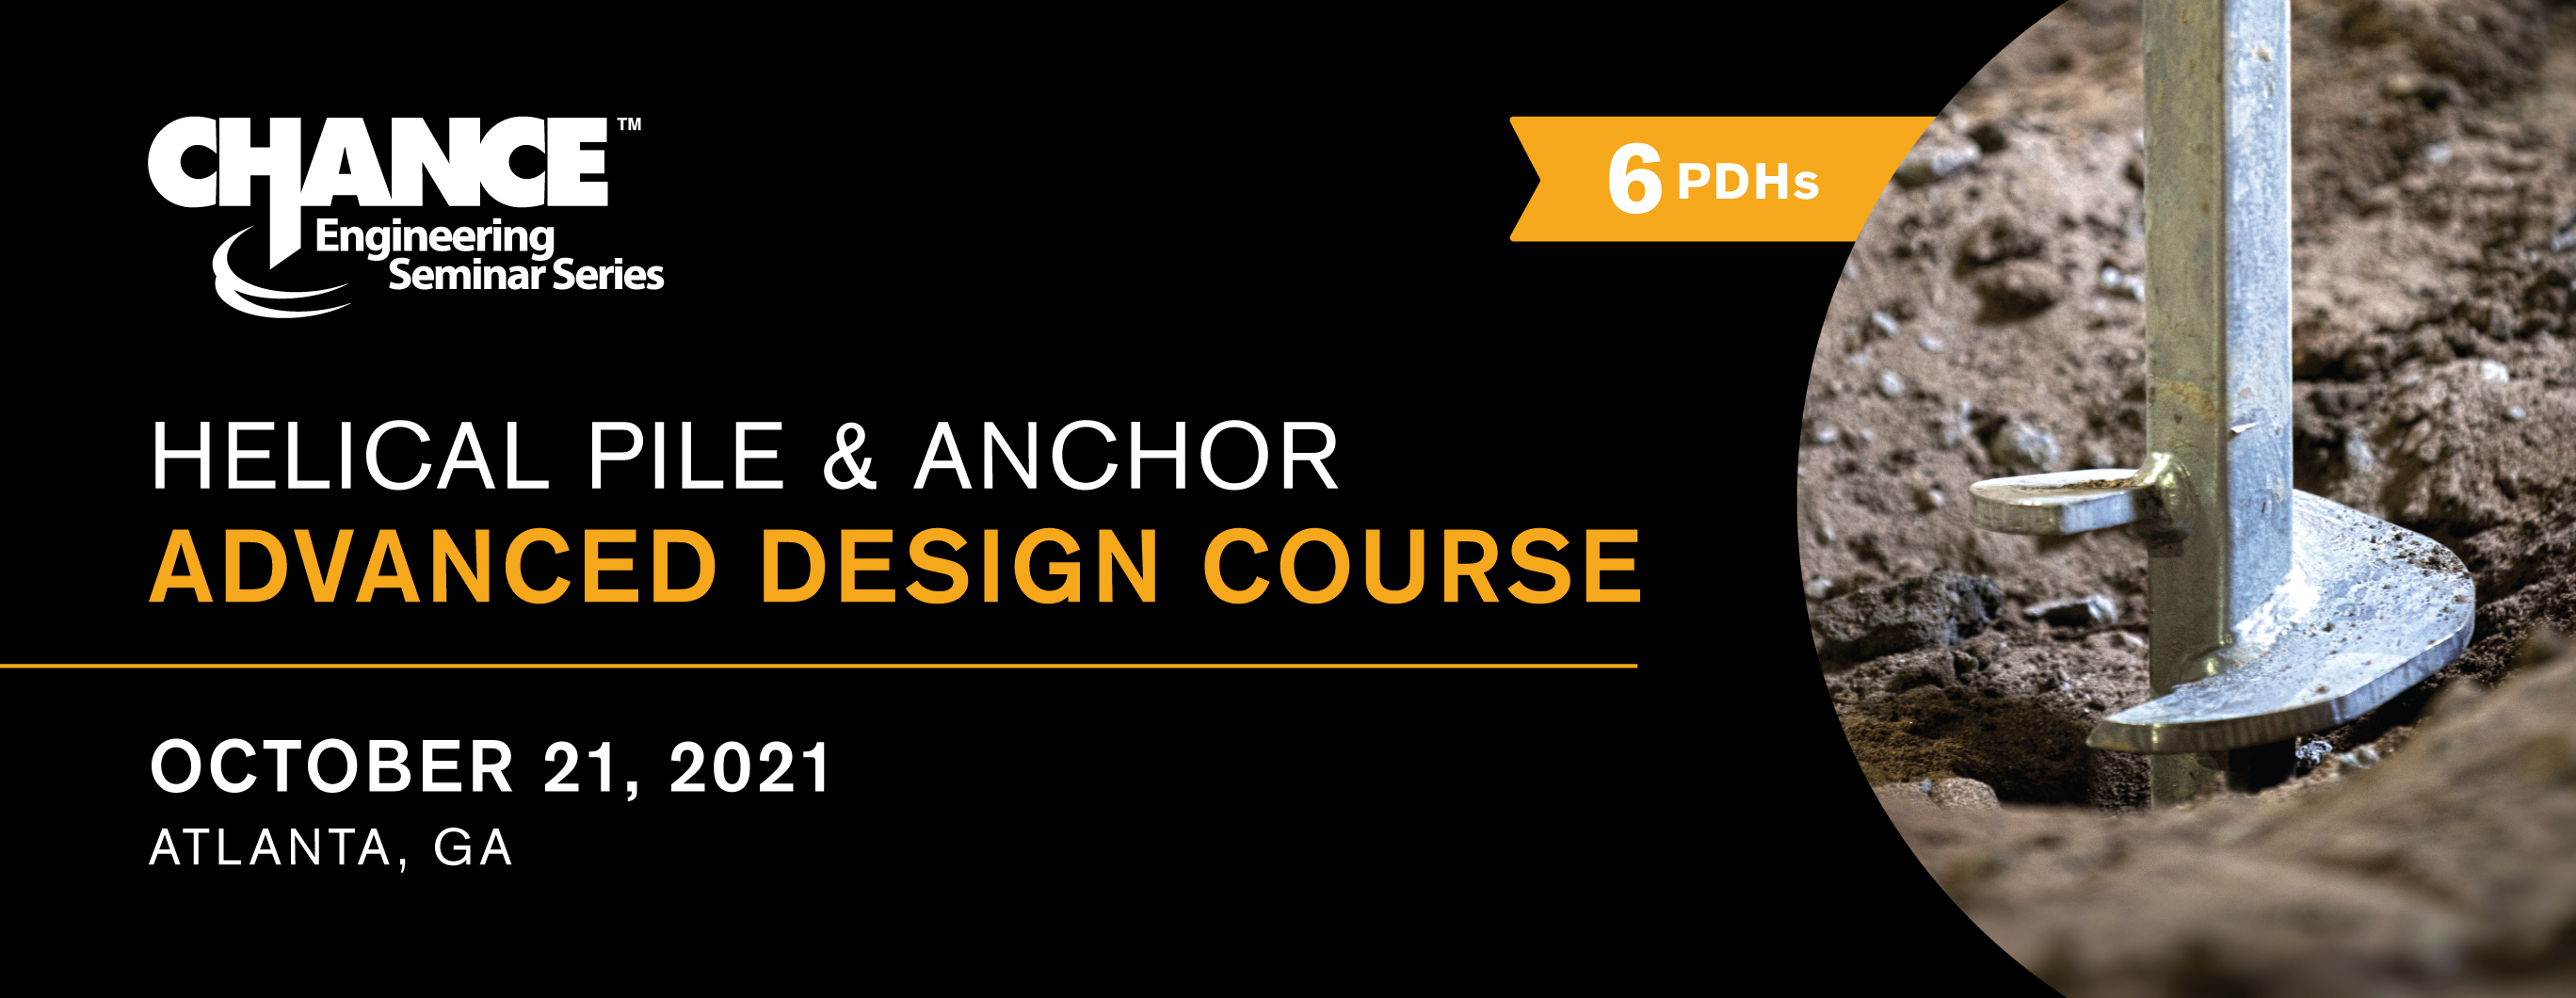 Helical Pile & Anchors Advanced Design Course